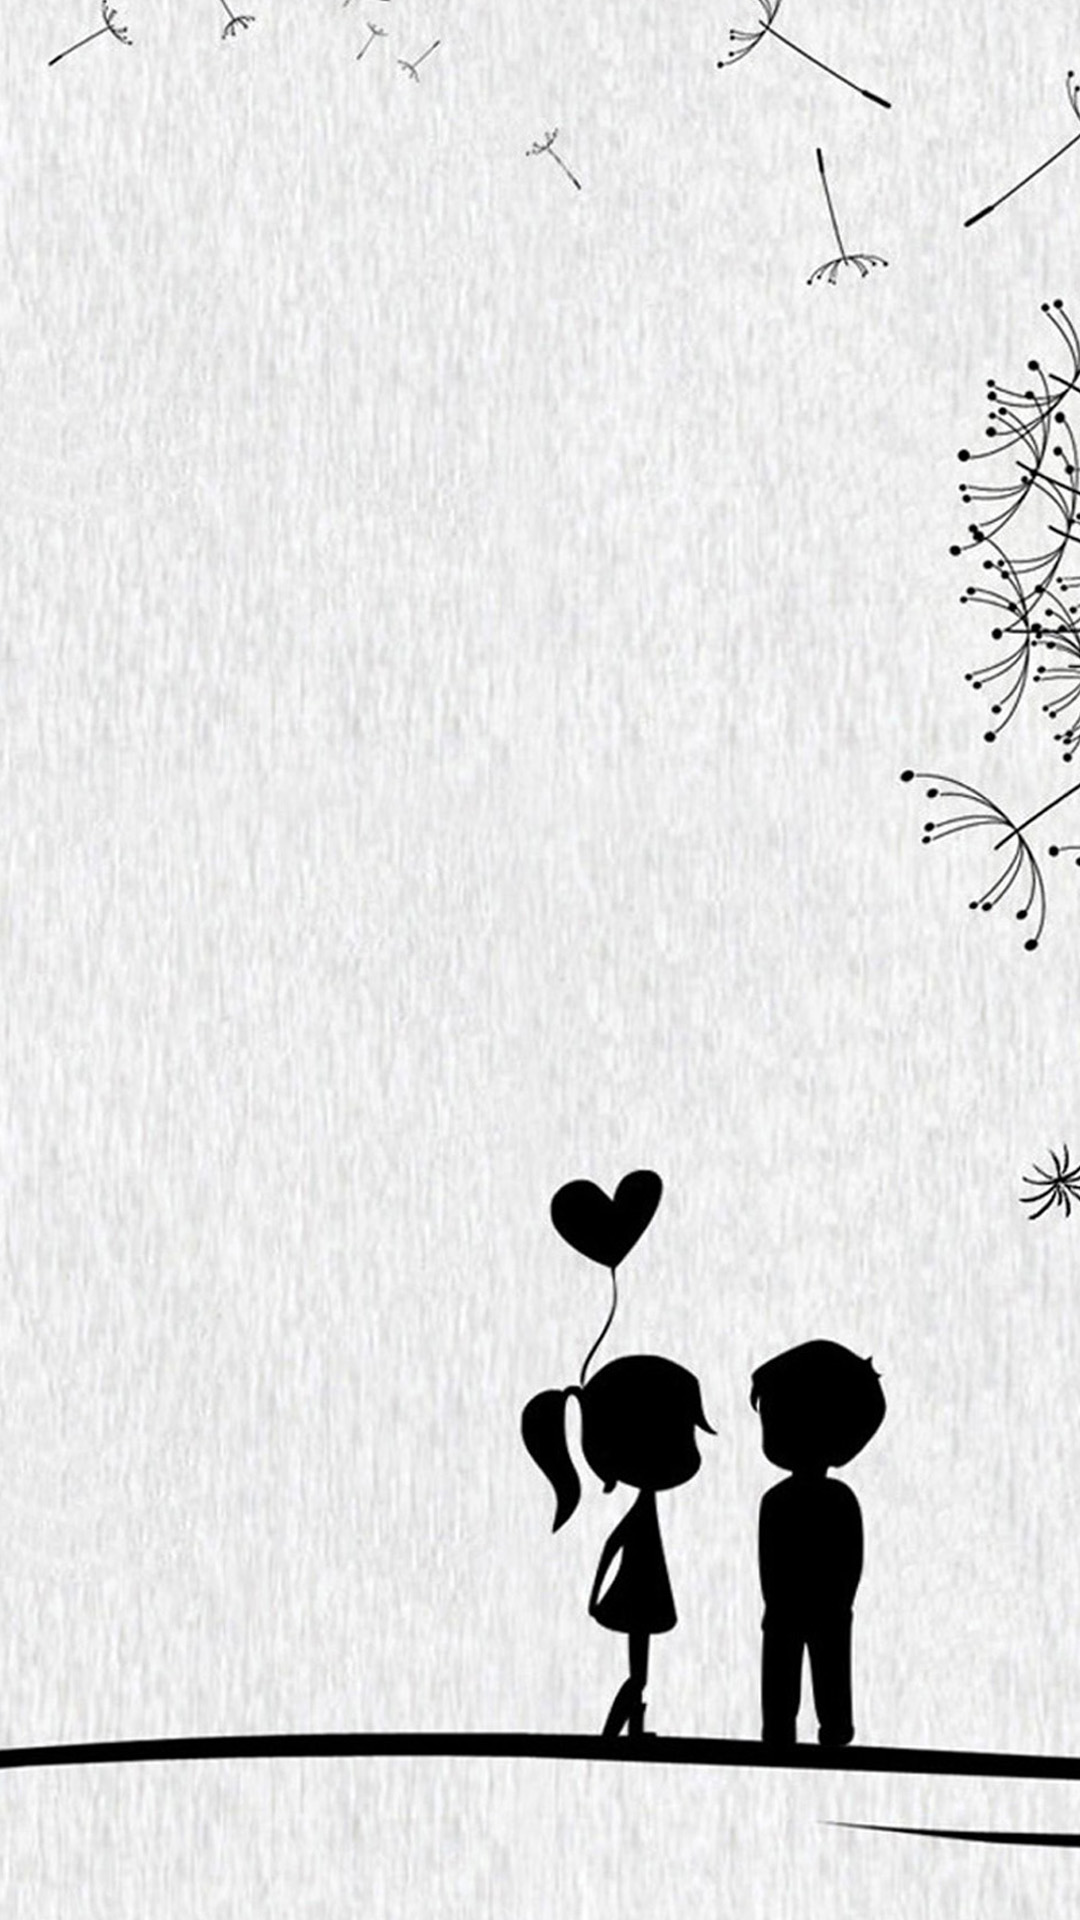 Cute Couples Black And White Illustrations